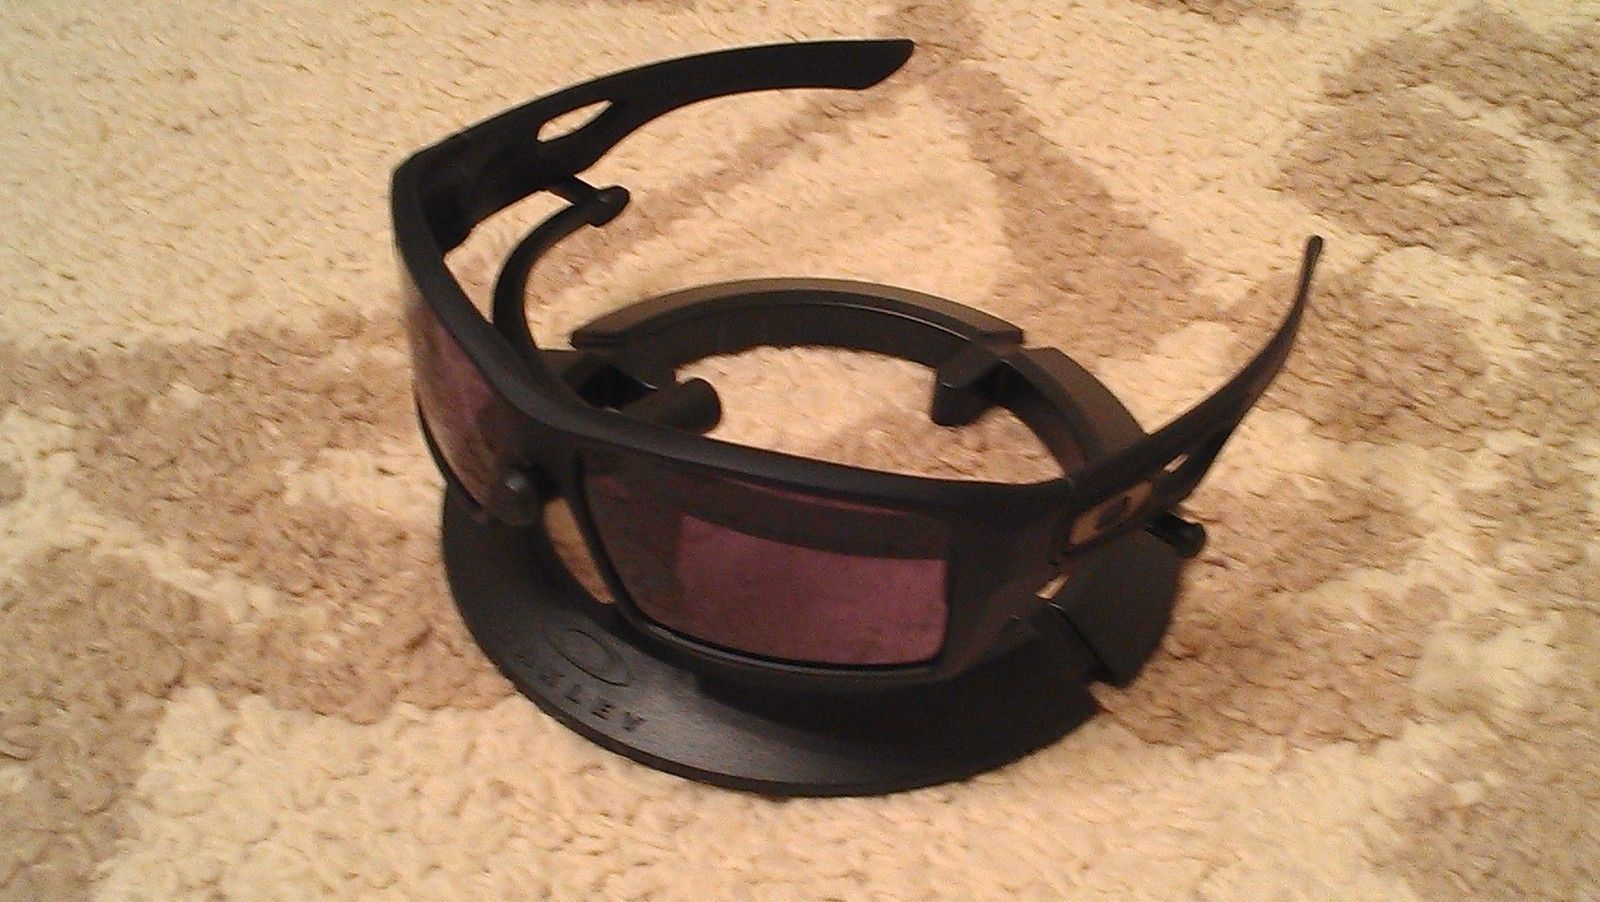 XS Polished Carbon/BIP + Brand New Oakley Eyepatch 2 - $325 OBO -- Make An Offer..Must Go - 744y.jpg